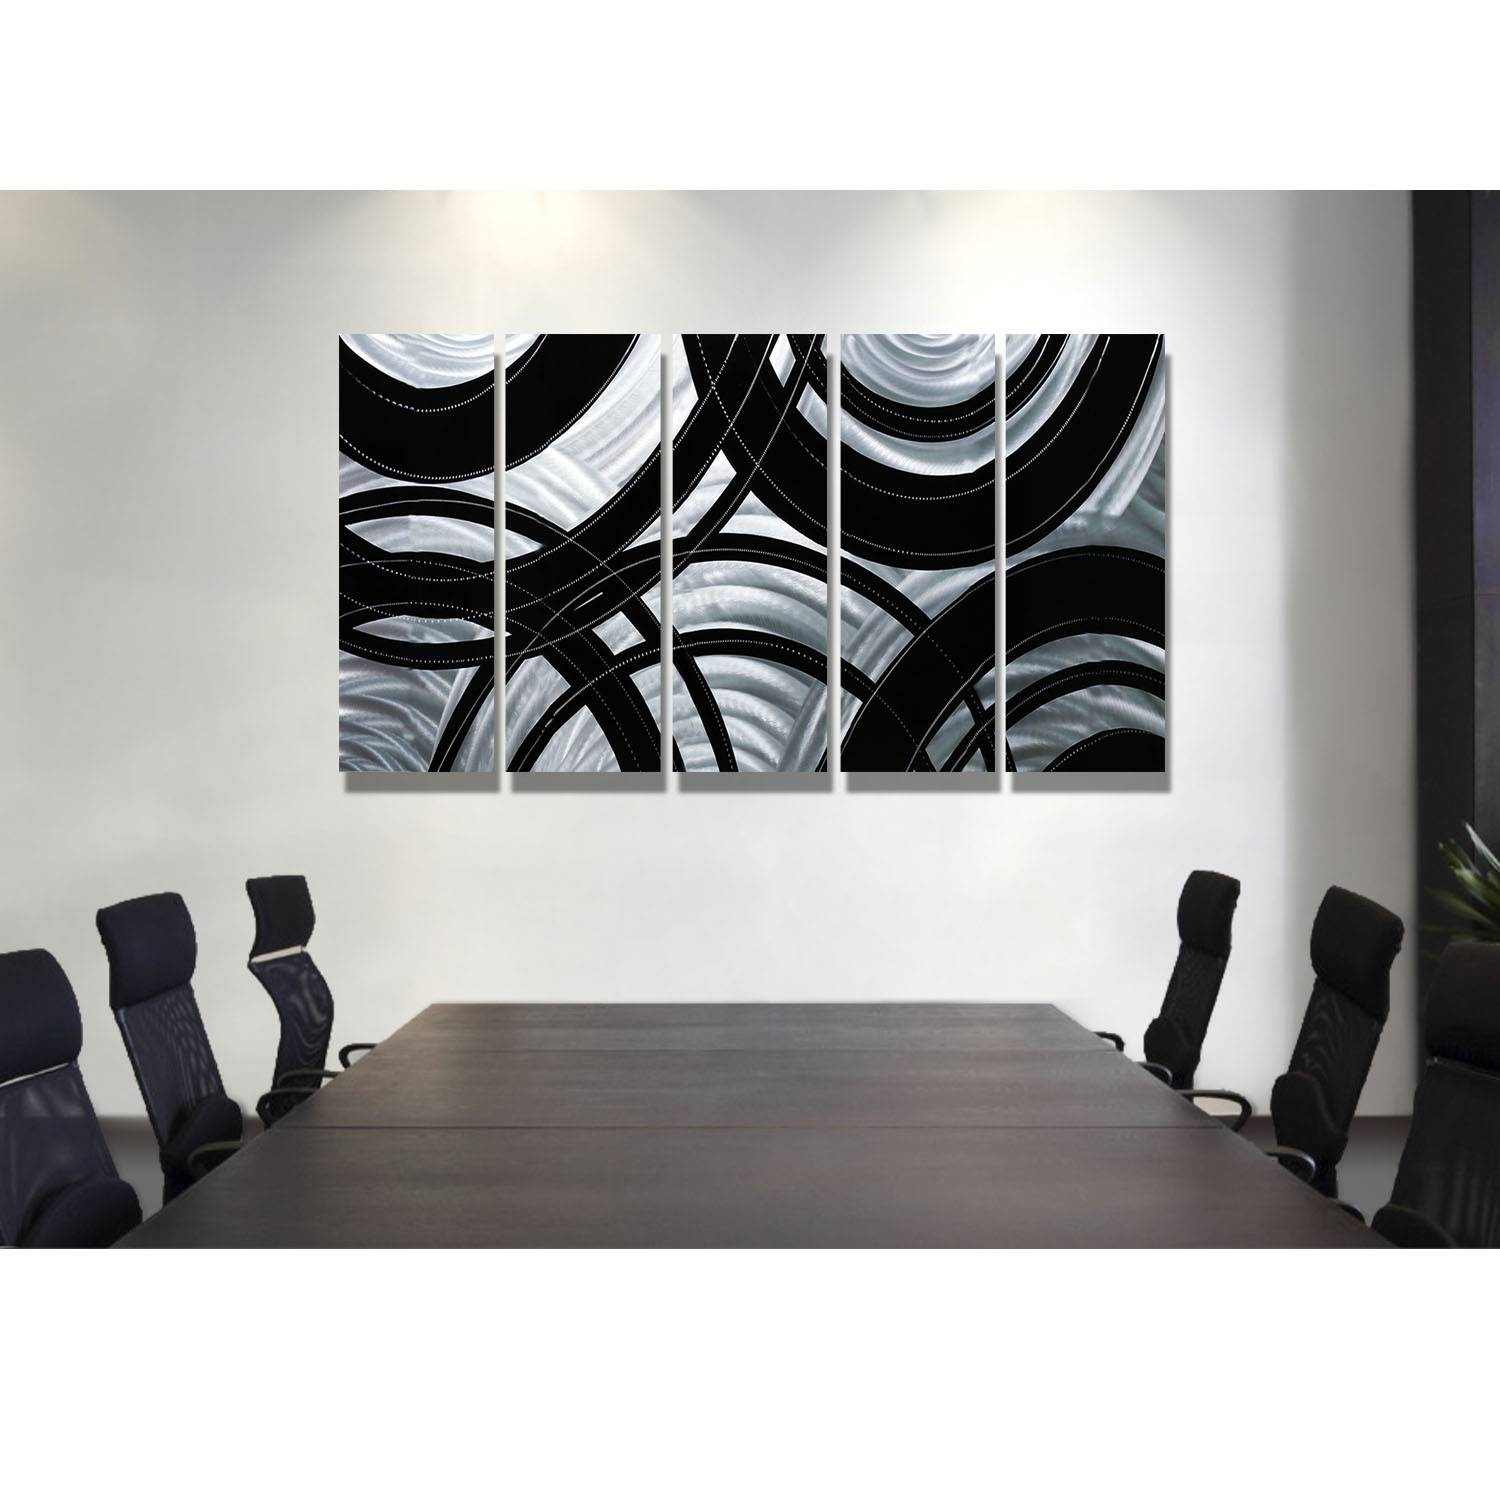 Synergy – Black And Silver Metal Wall Art – 5 Panel Wall Décor Inside 2018 Black And Silver Metal Wall Art (View 10 of 20)